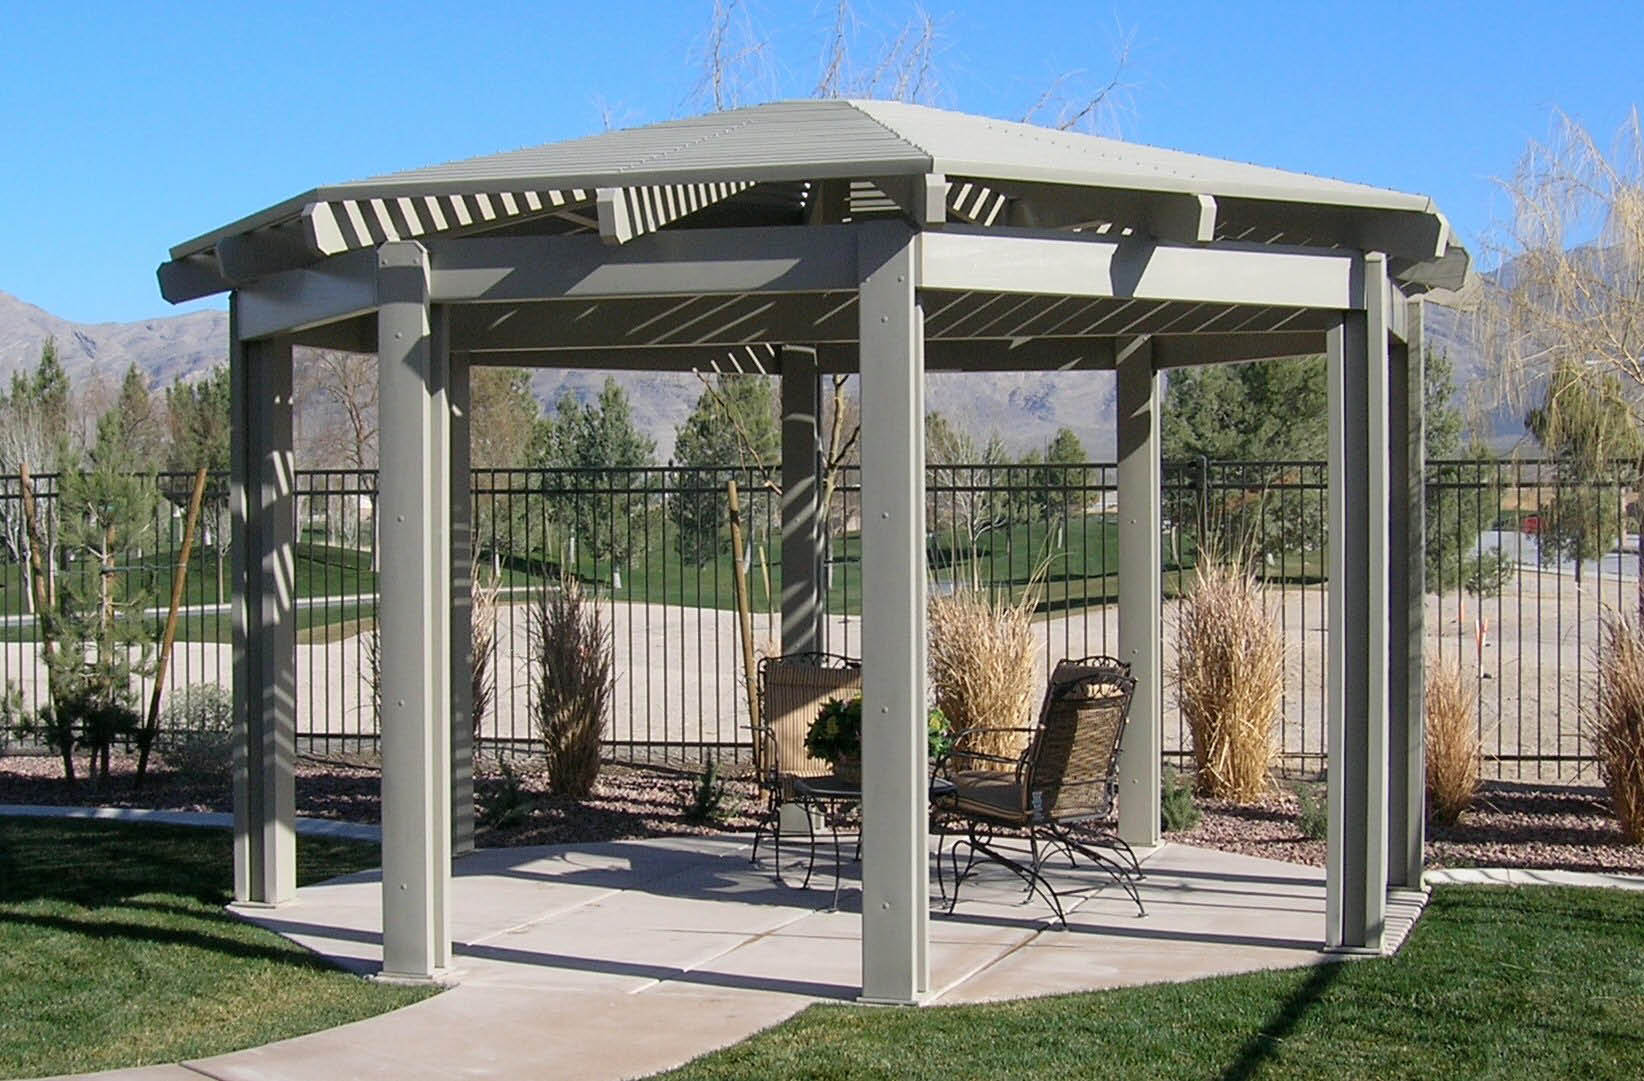 Get your outdoor gazebo from Sunshield Awning Company serving Las Vegas